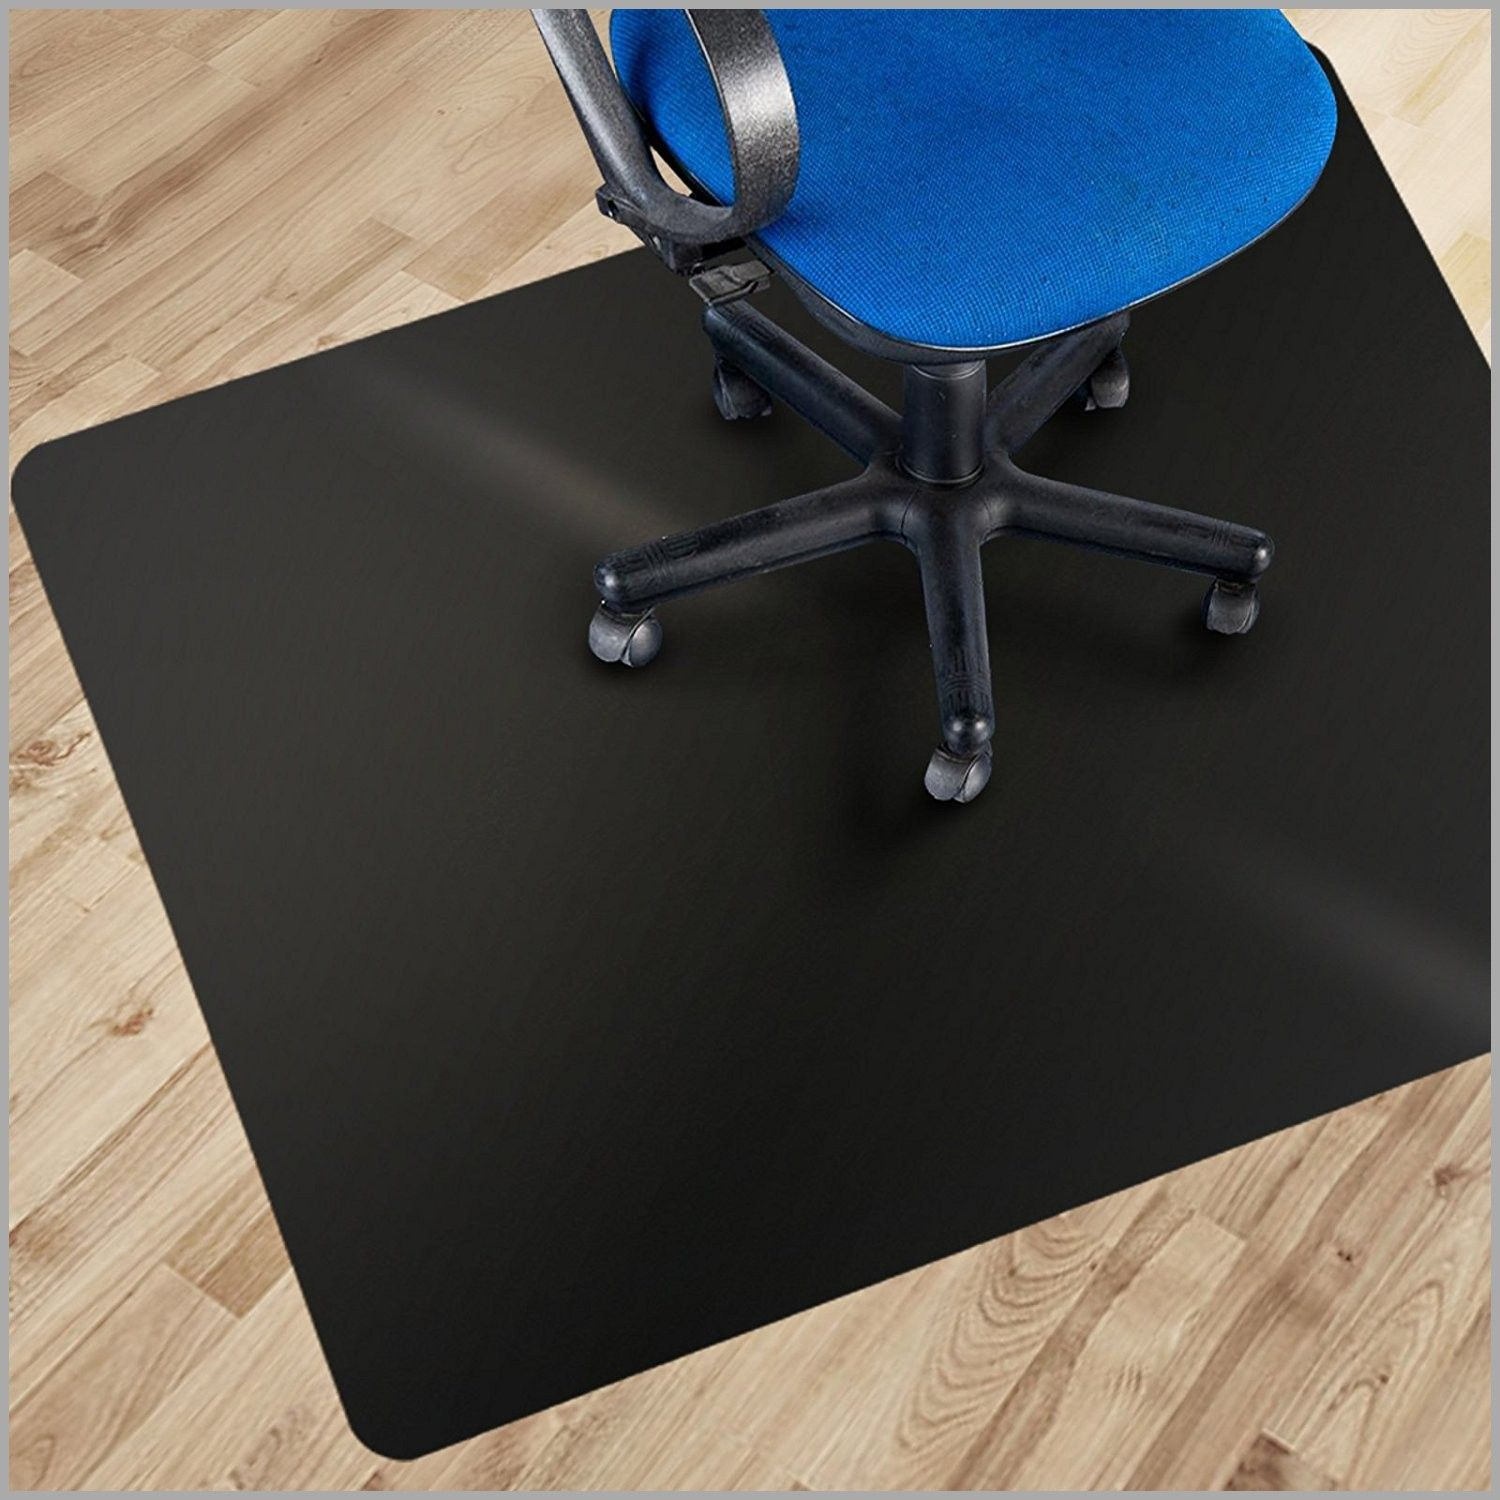 20 Plastic Office Chair Mat Ashley Furniture Home Office Check More At Http Adidasjrcamp Com 70 Plastic Offic Office Chair Mat Office Chair Desk Chair Diy